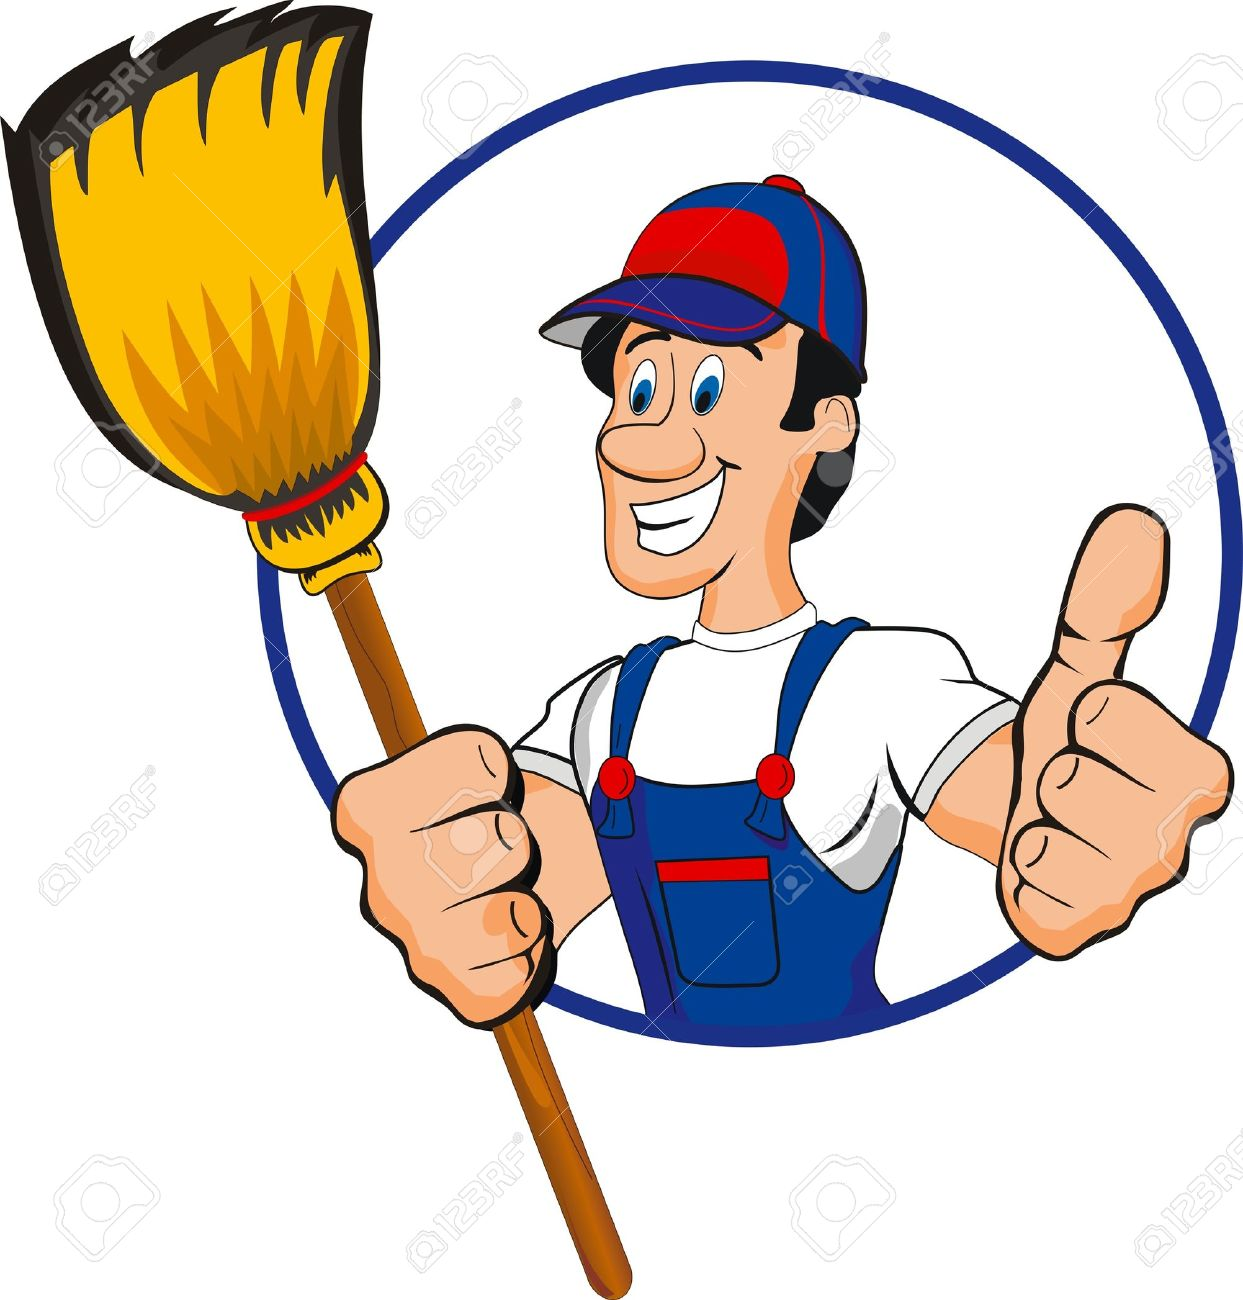 Janitorial free download best. Housekeeping clipart custodial